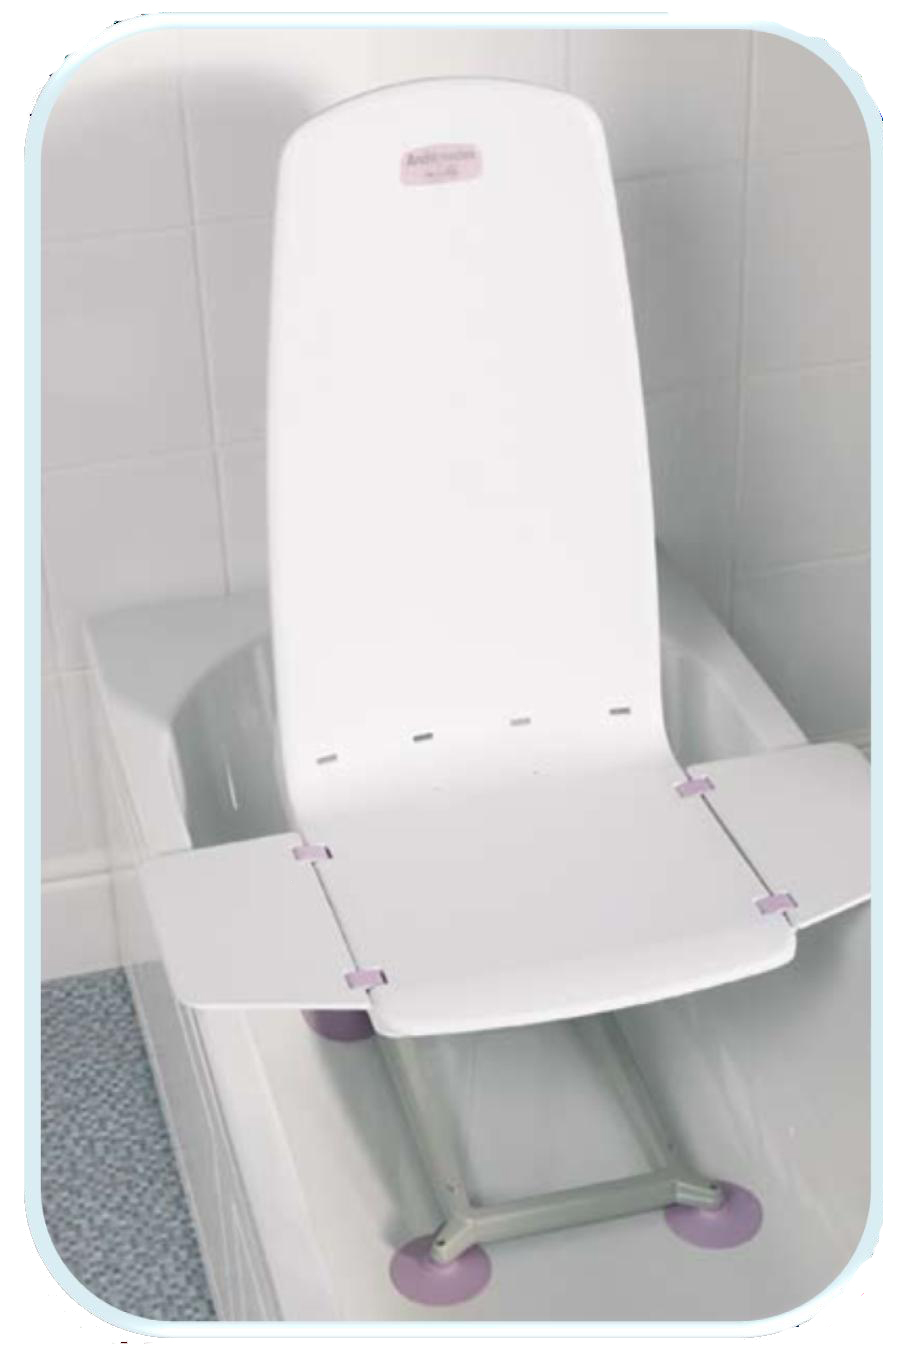 firststreet bath lifts, medical bath lifts, archimedes bath lift reviews, sonaris reclining bath lift